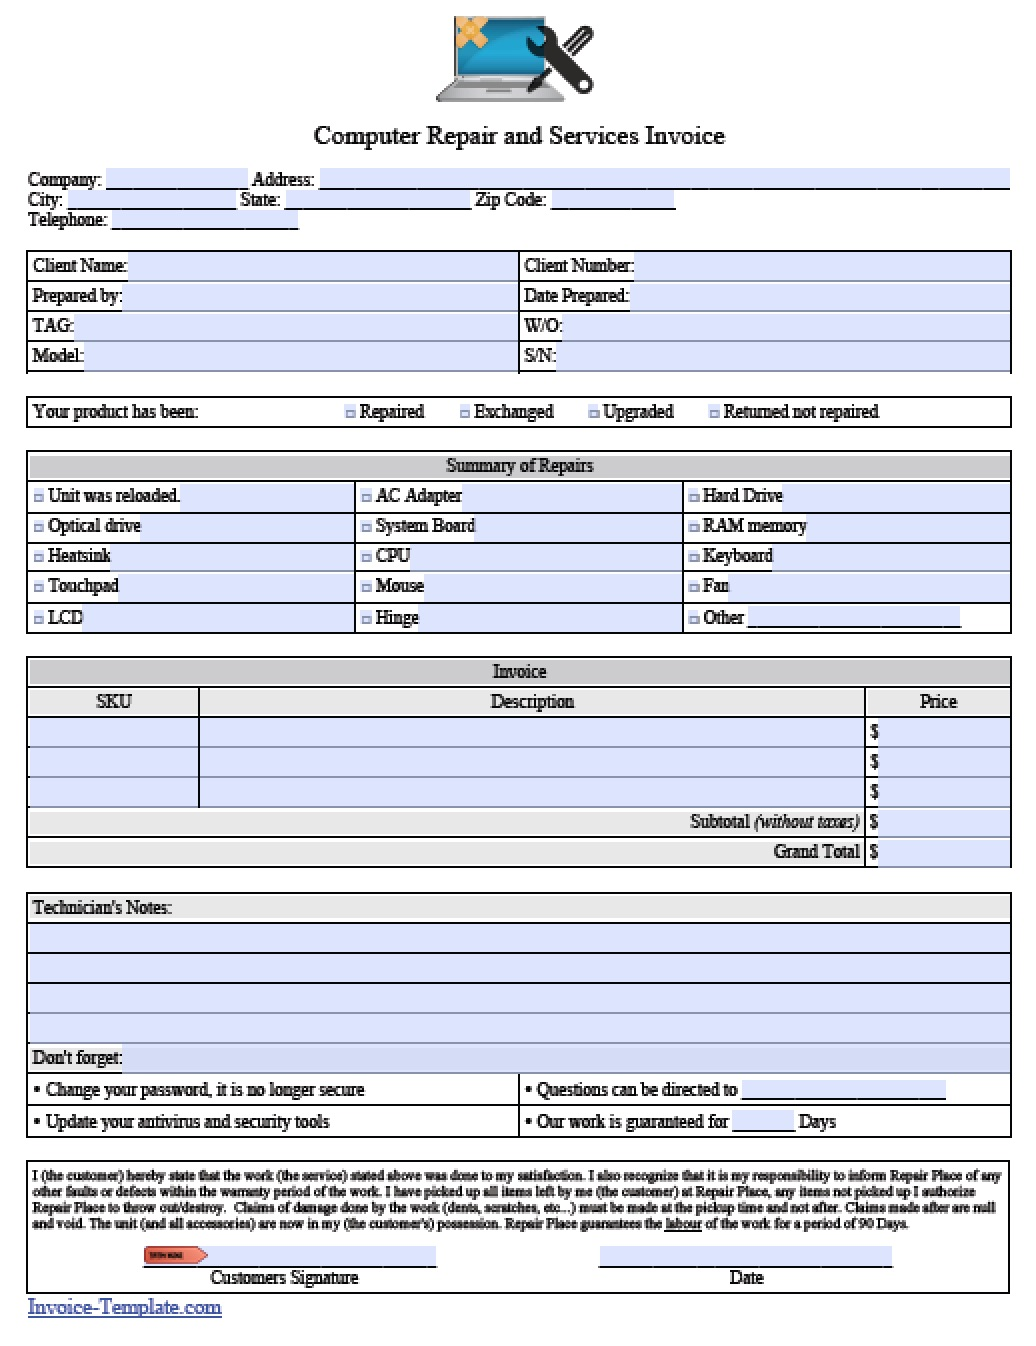 pc repair invoice template  Free Computer Repair Service Invoice Template | Excel | PDF | Word ...